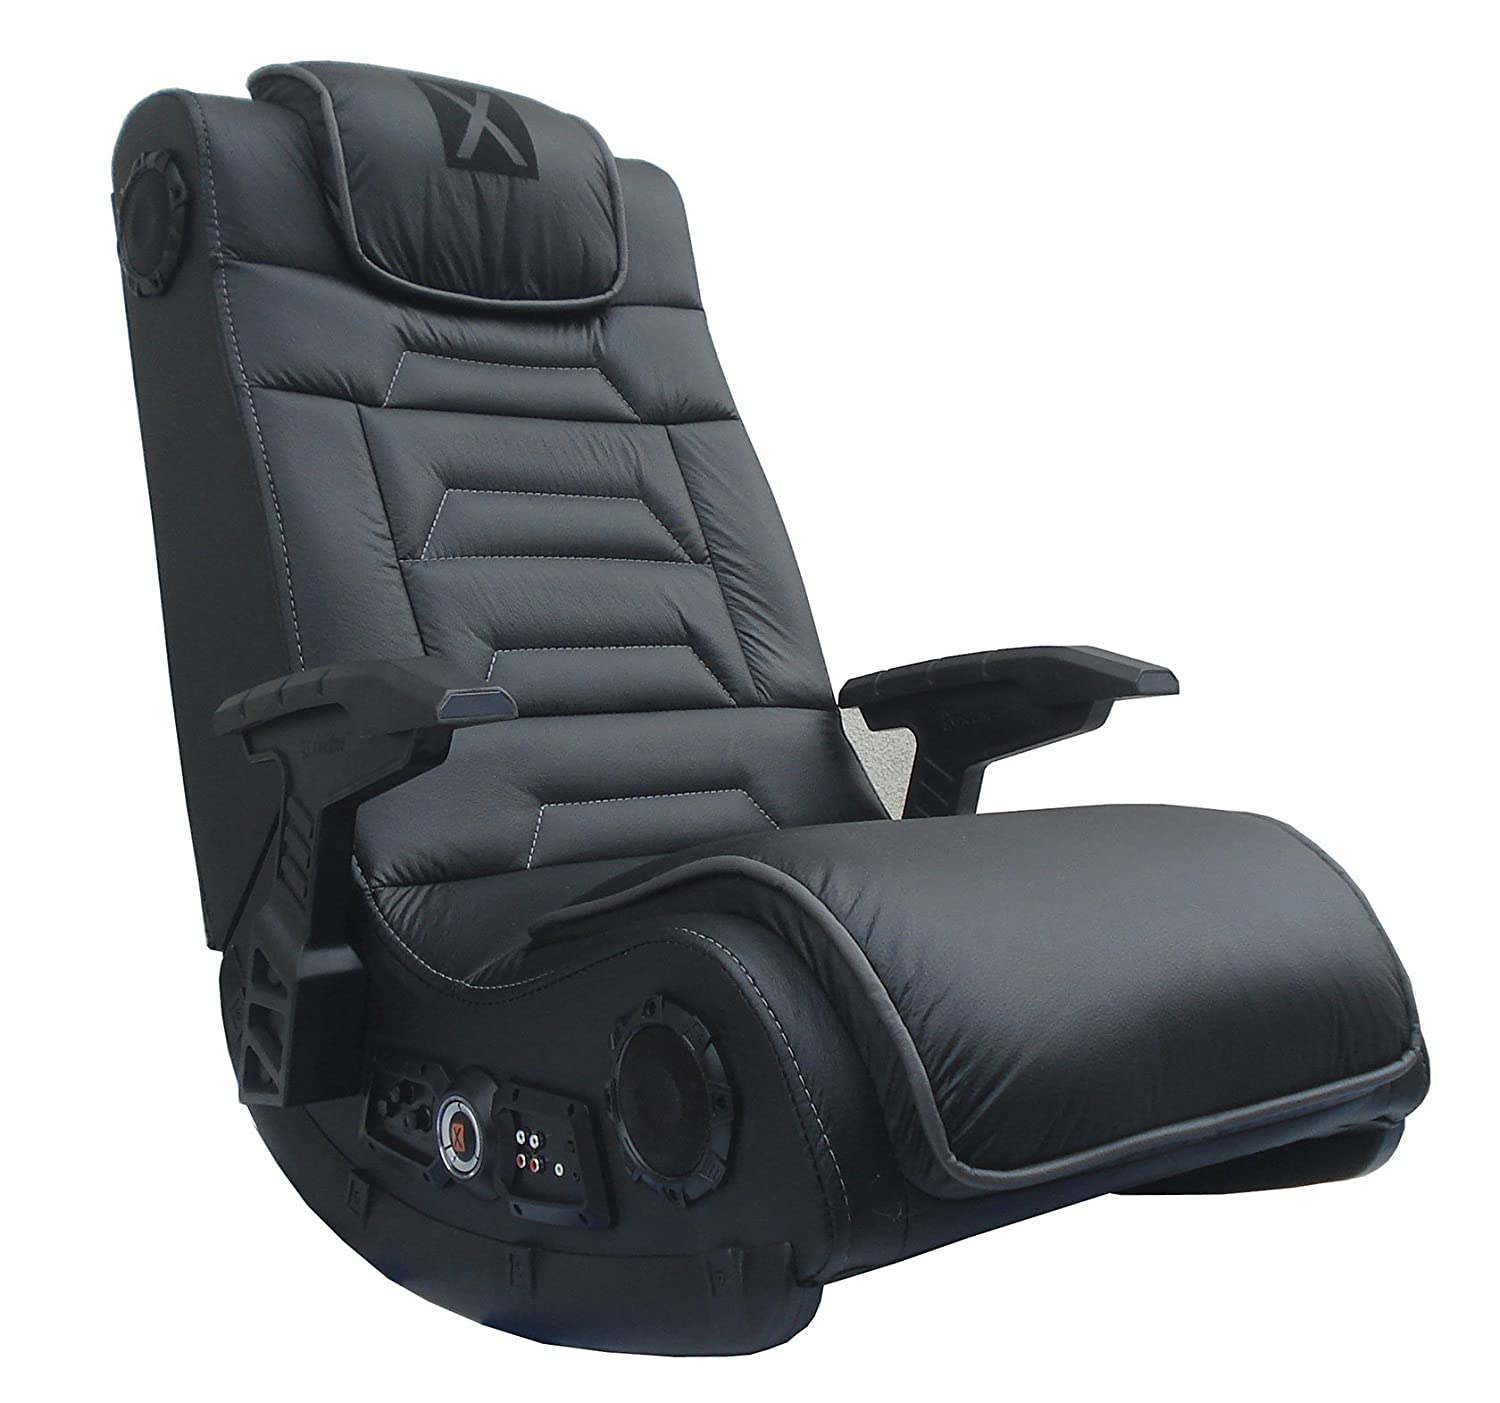 gaming chair reviews 2016 uk black and white rocking cushions best  ultimate buying guide